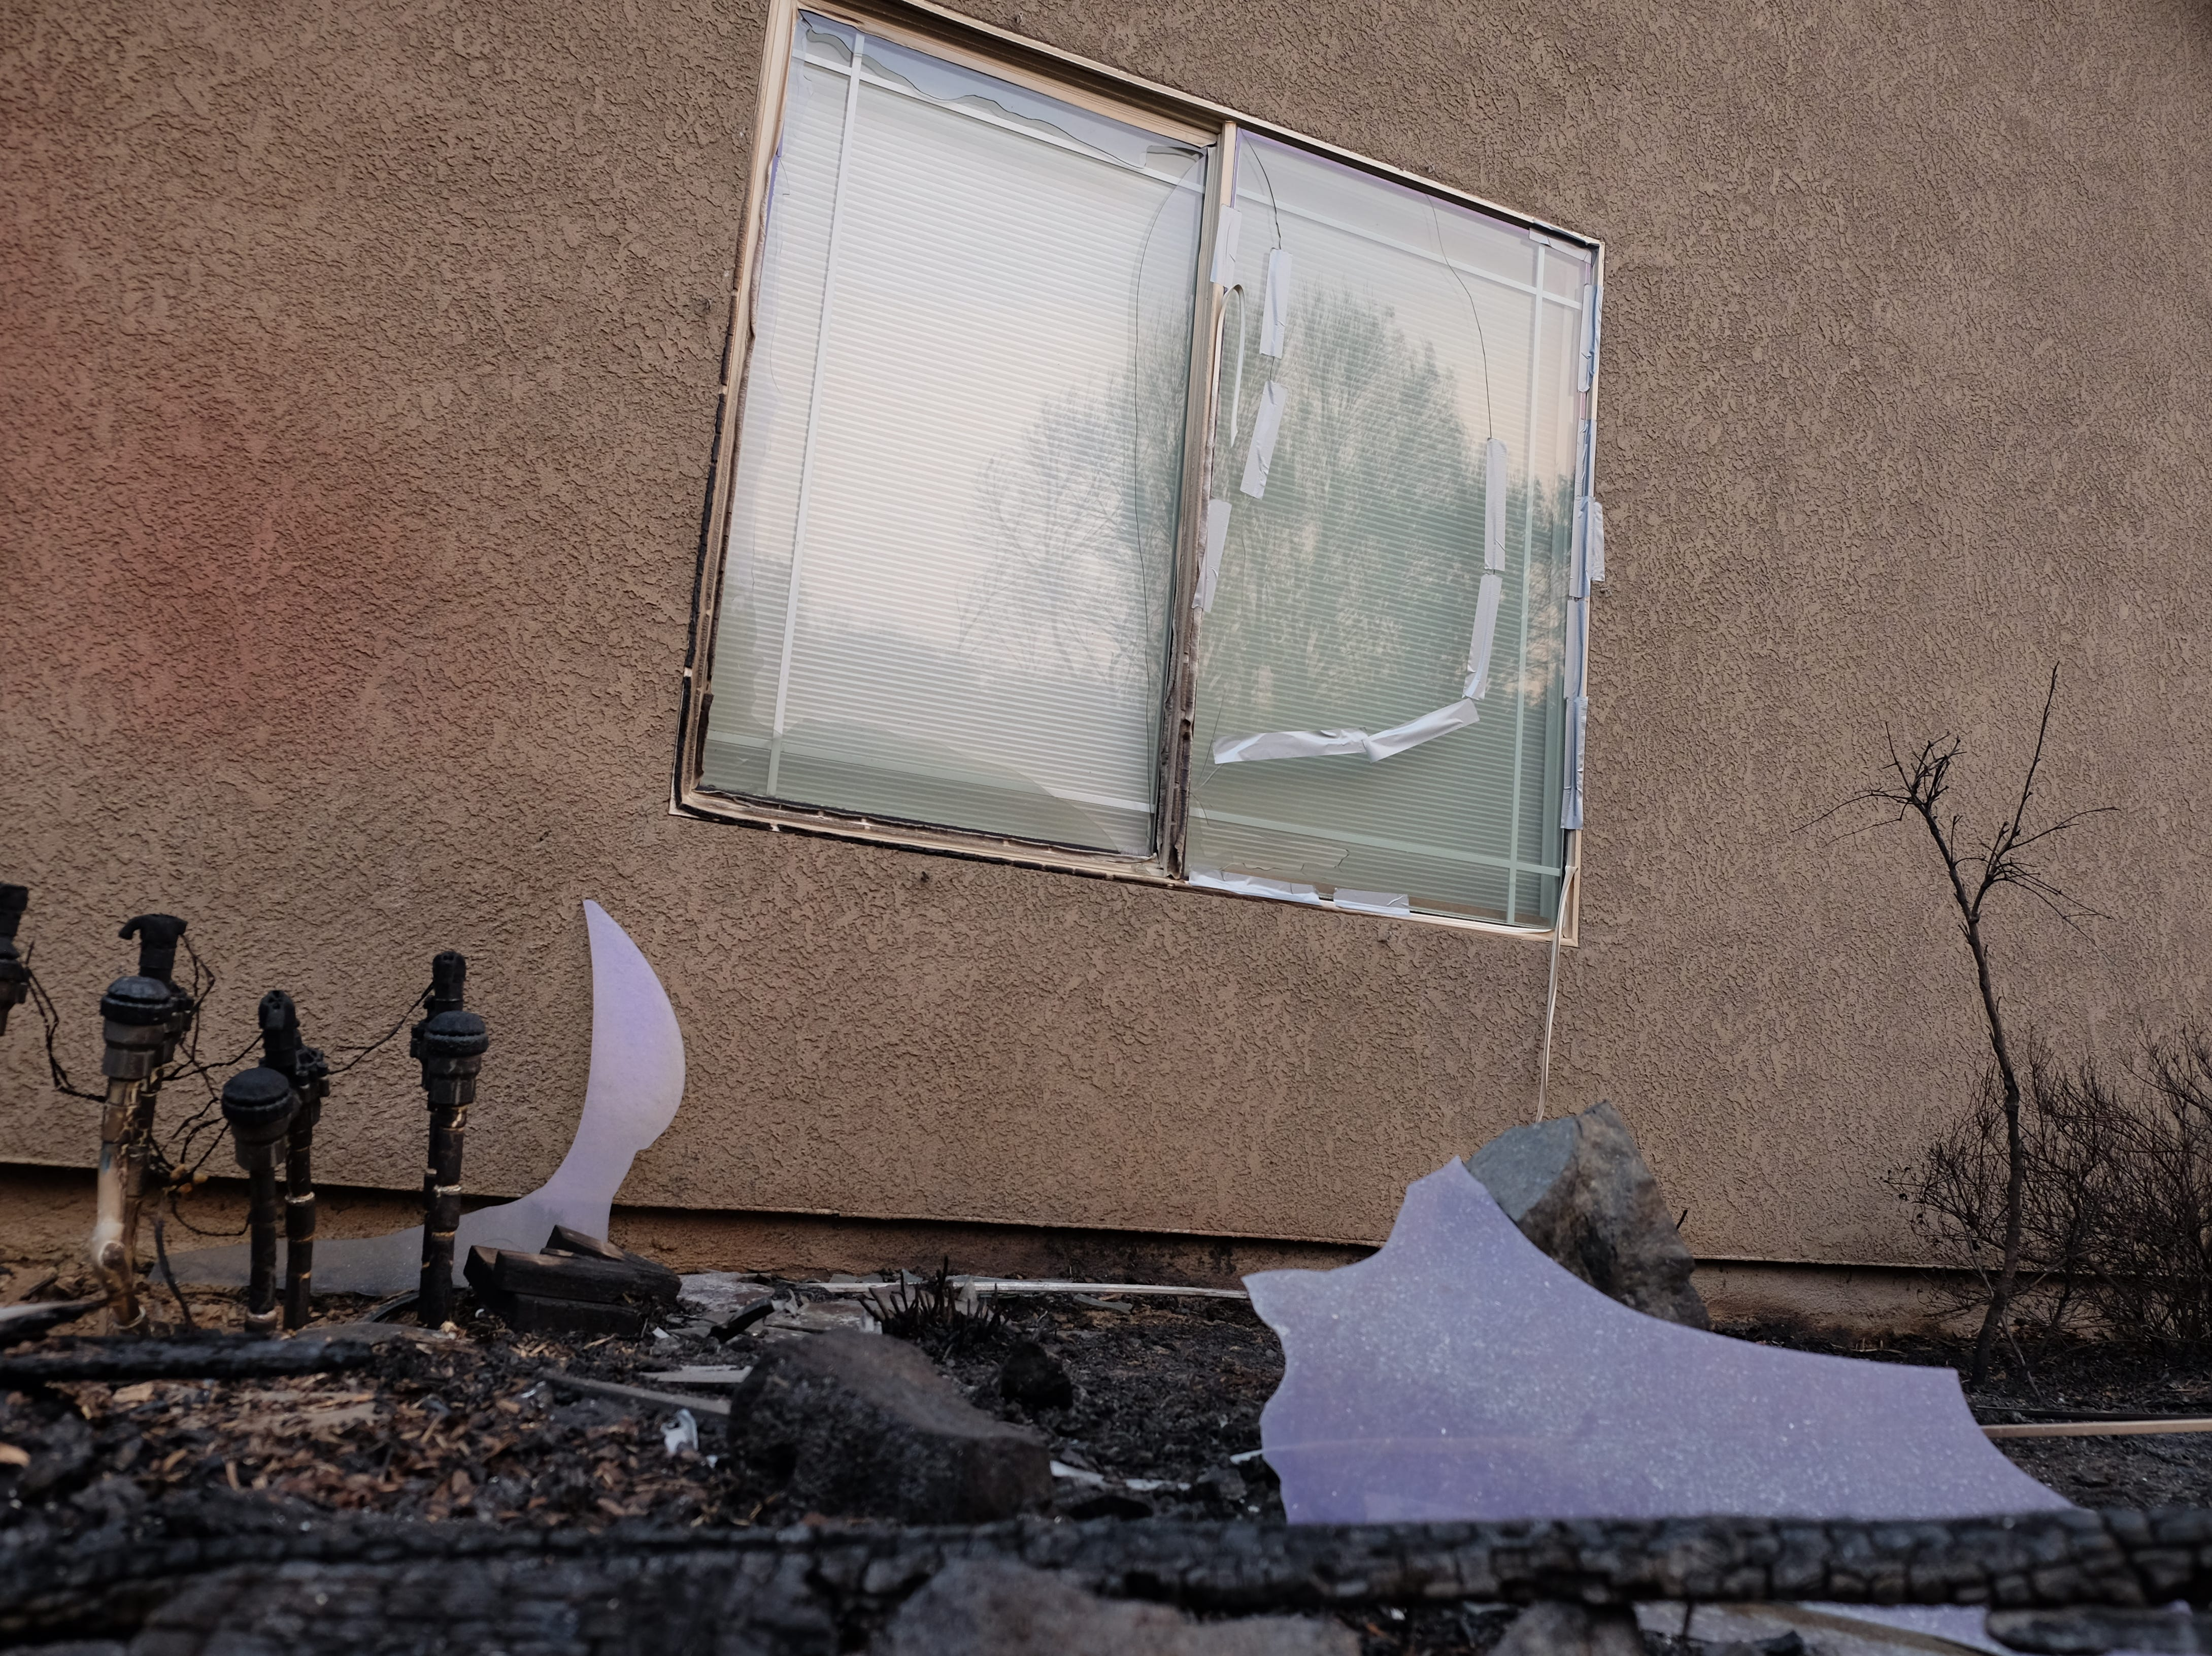 The Carr Fire burned the side yard but stopped short of the Robinson's Redding residence. A damaged window and burned utility connections were most of the damage to the home.